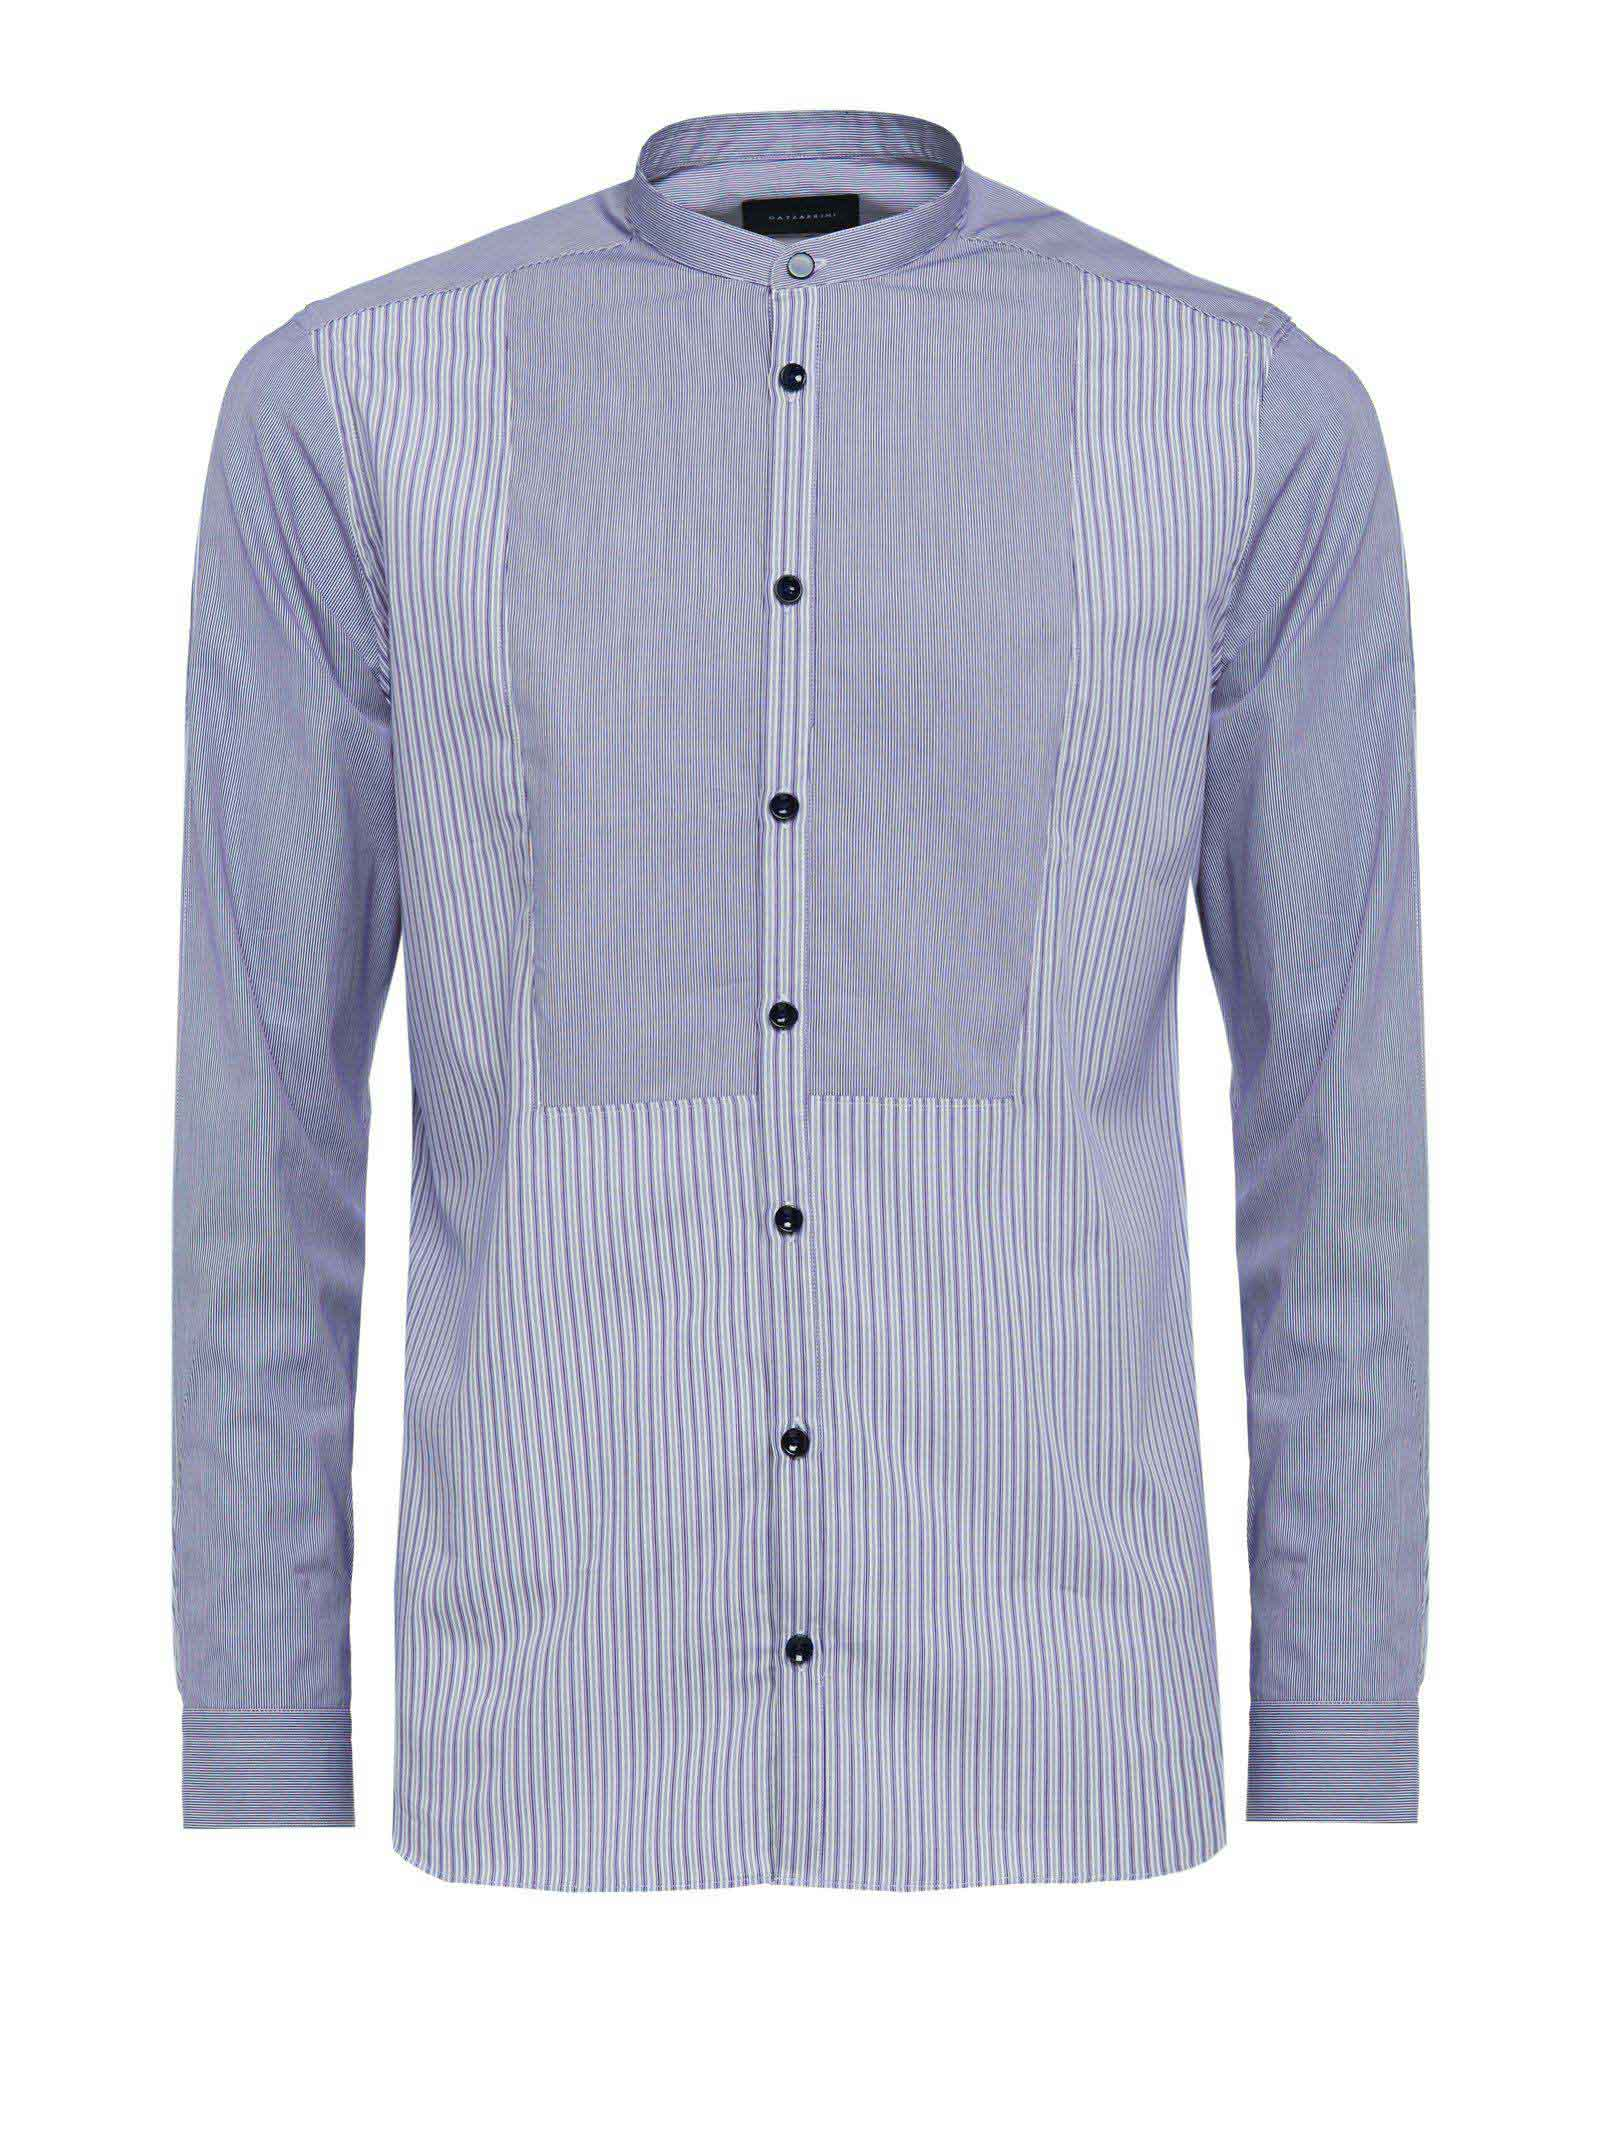 Gazzarrini shirt